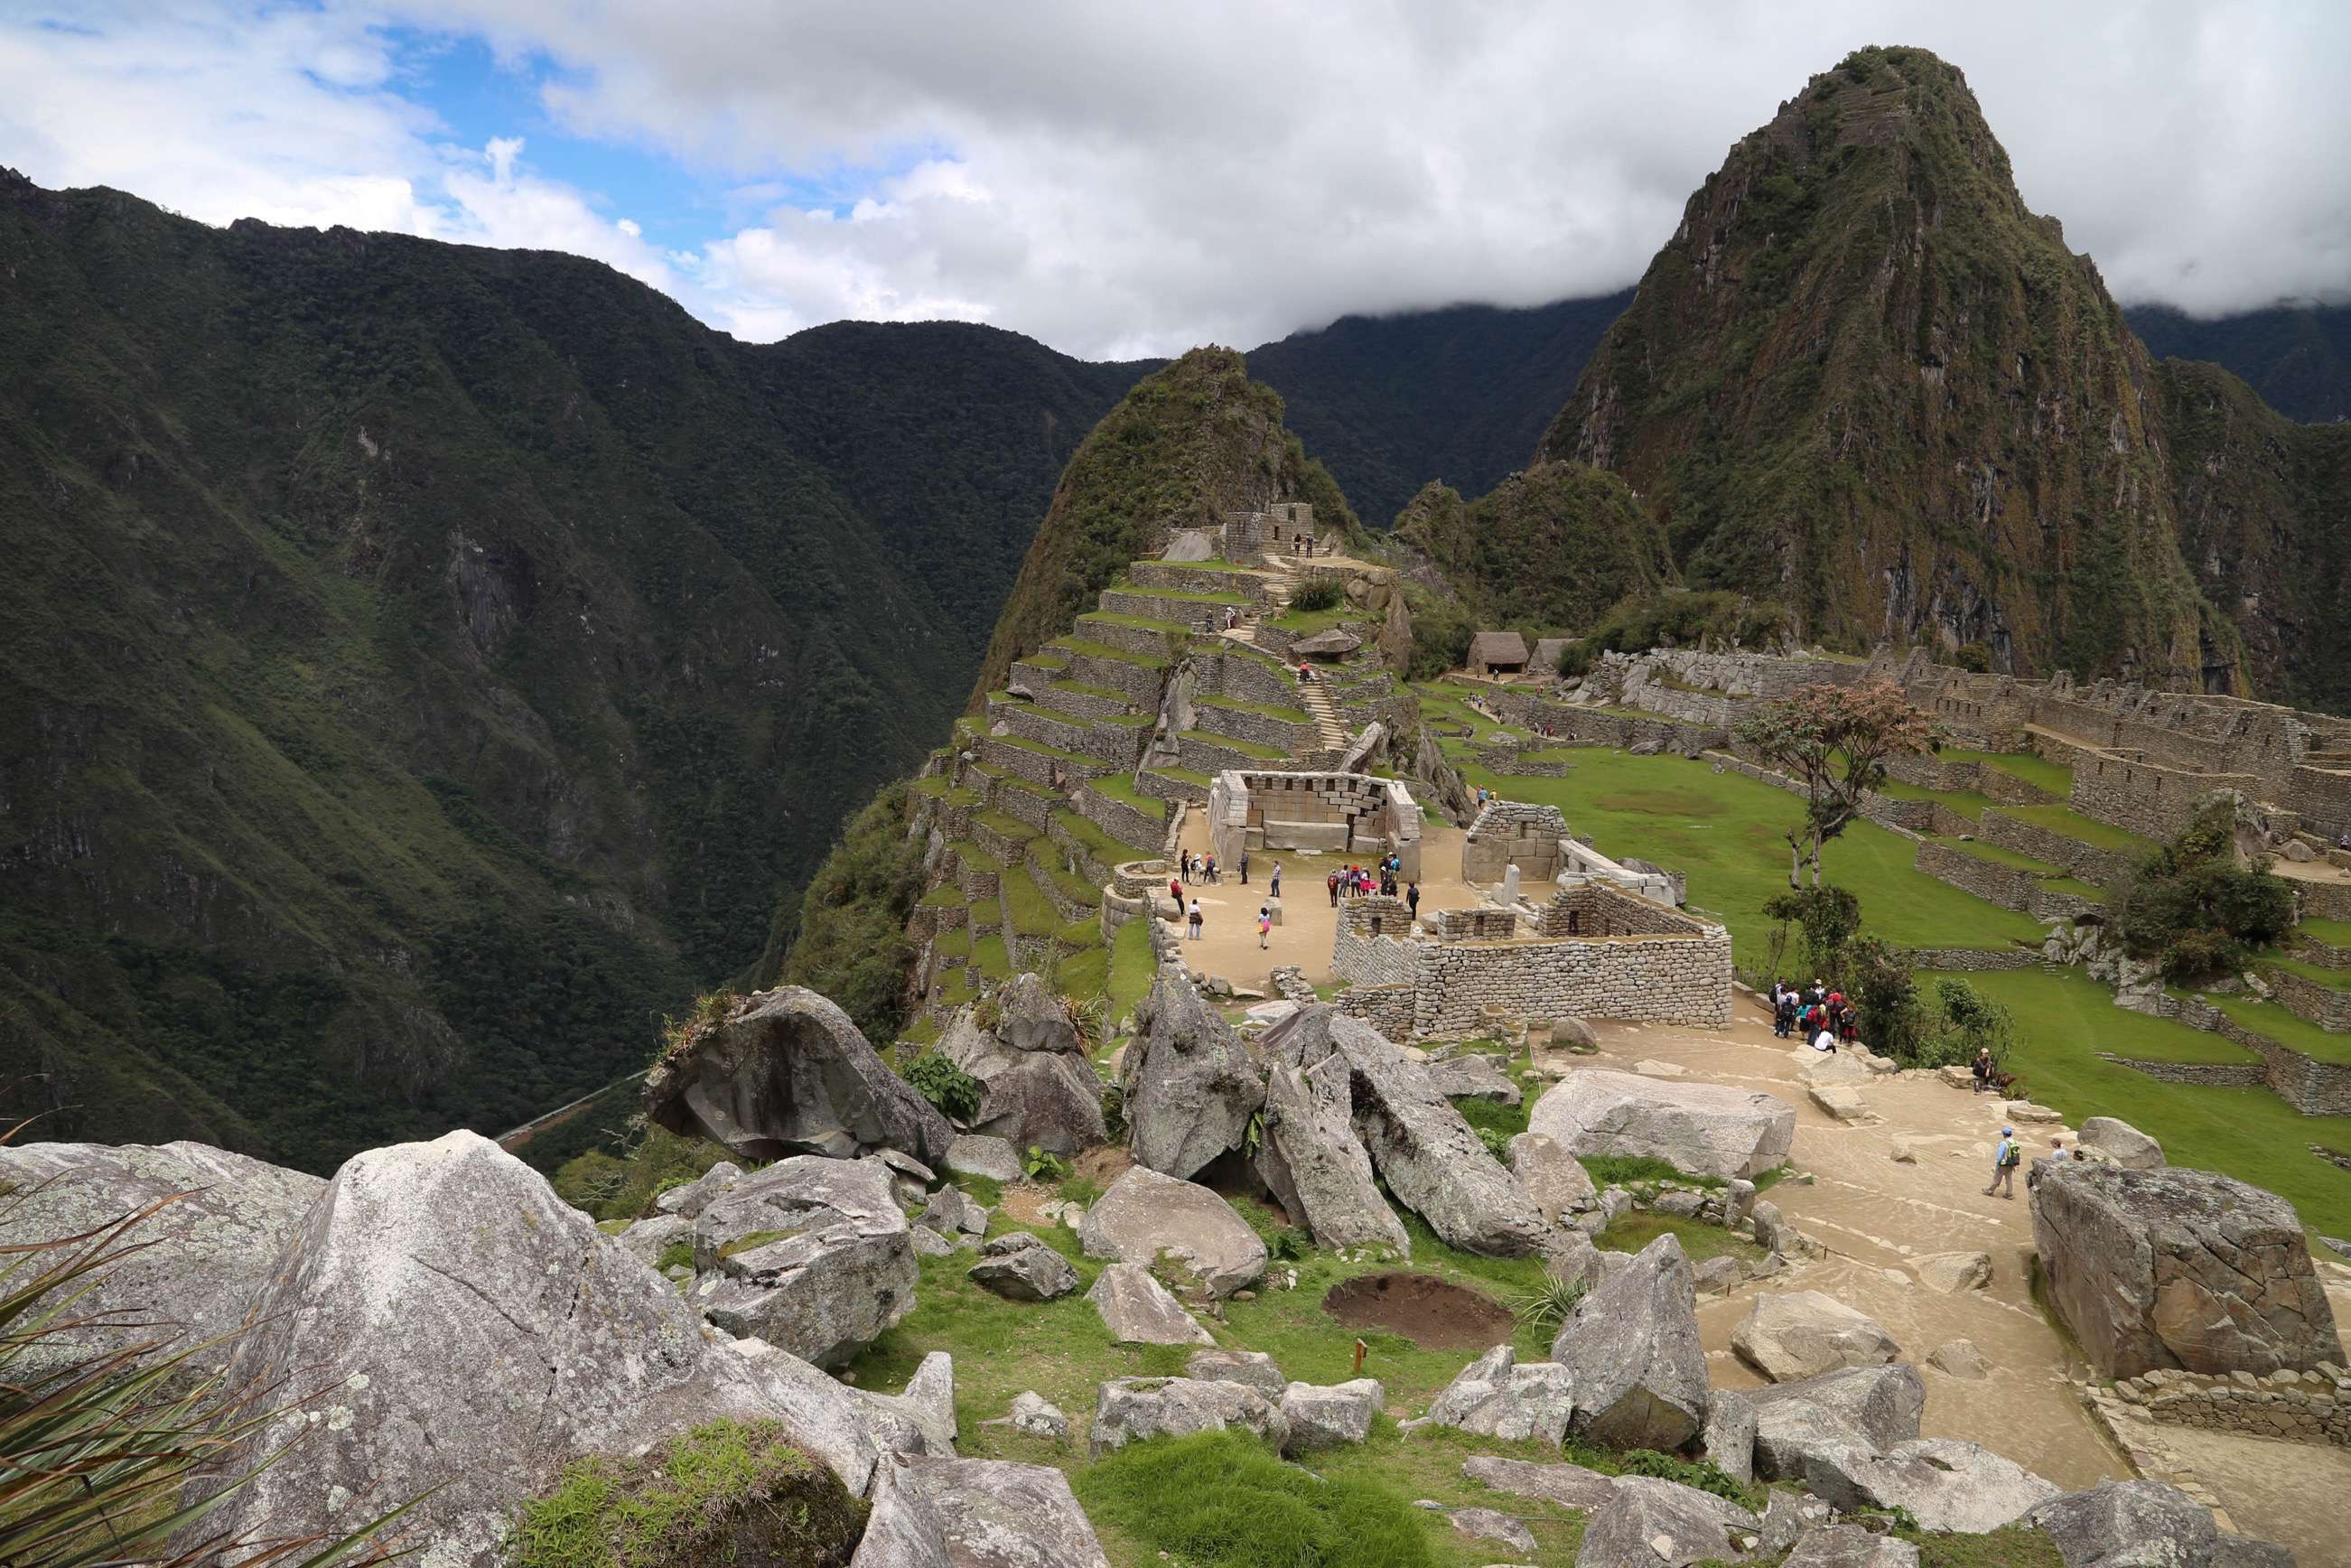 Granite, in this case, white, is an excellent building material and was plentiful at Machu Picchu and was quarried on site, as evidenced by the boulders found only at one place at Machu Picchu.